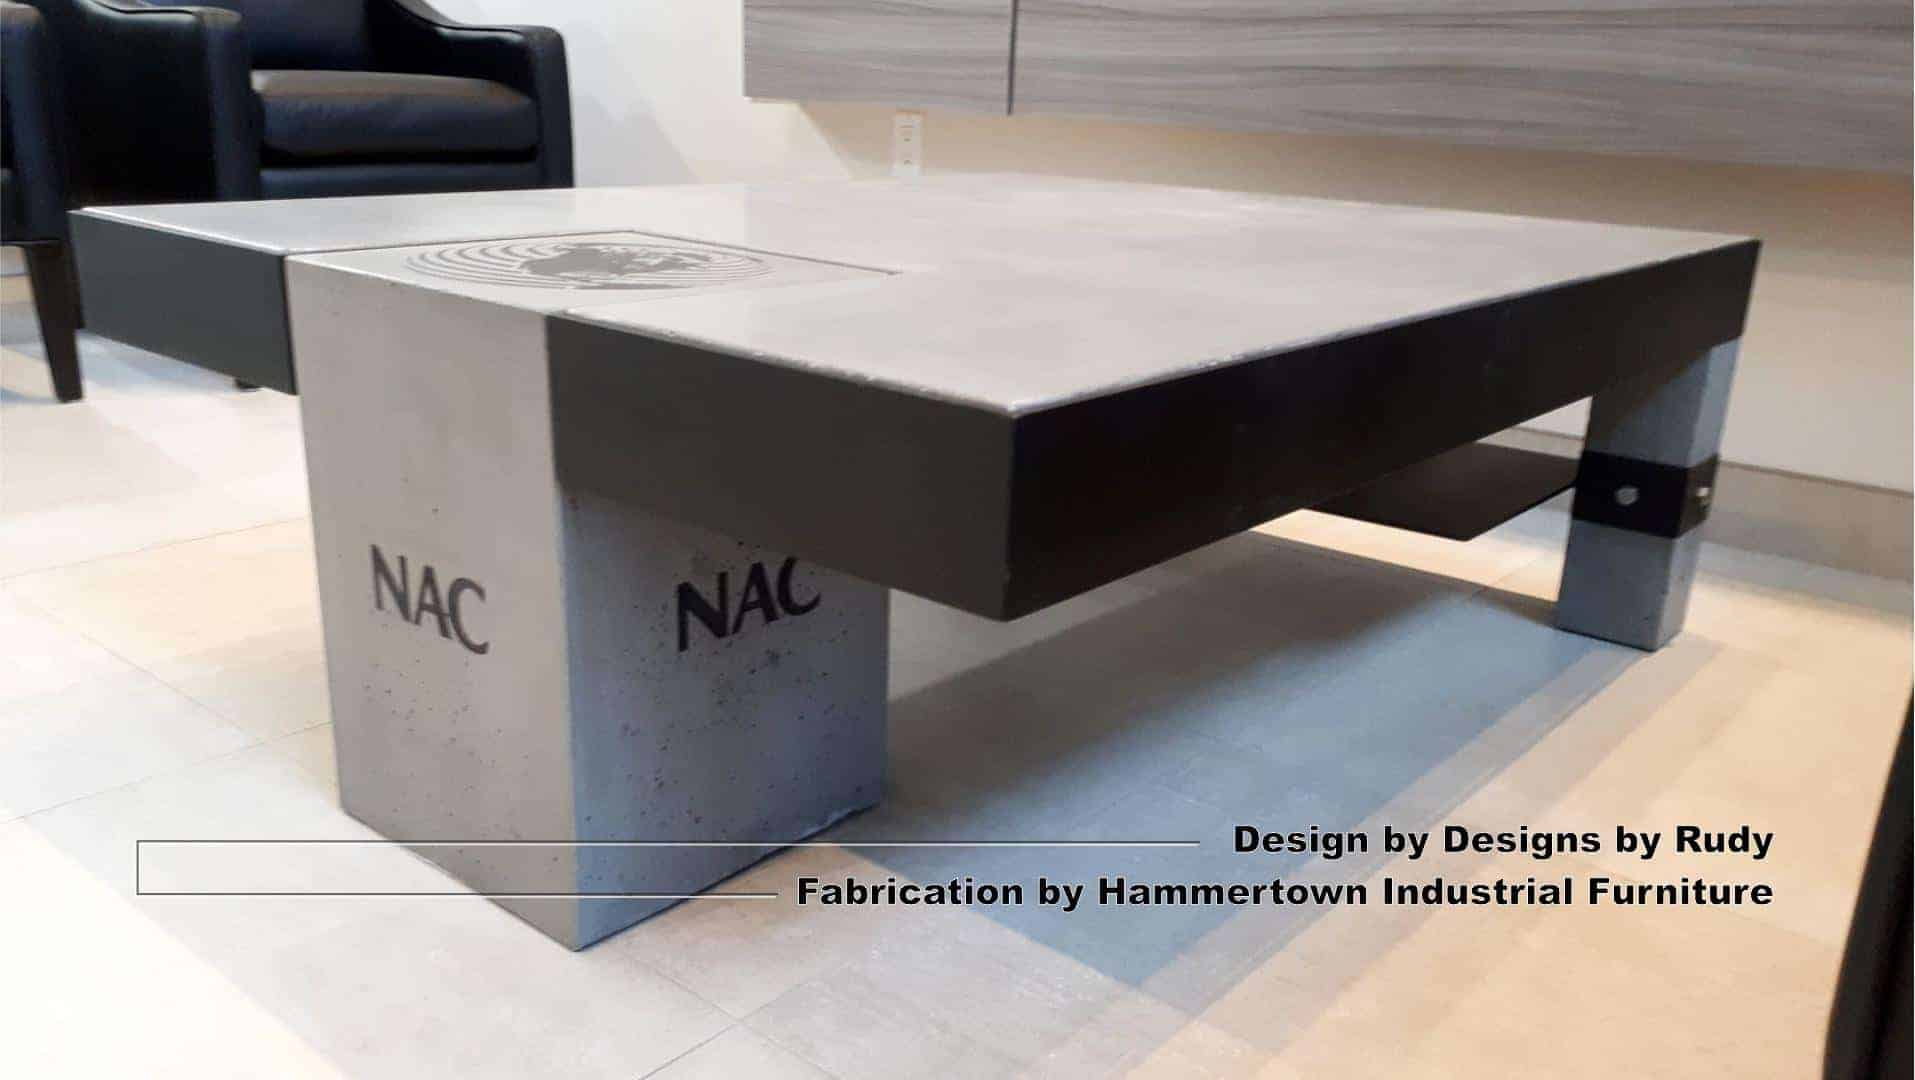 Concrete and steel coffee table for NAC, Designs by Rudy, Hammertown Industrial Furniture, view 3